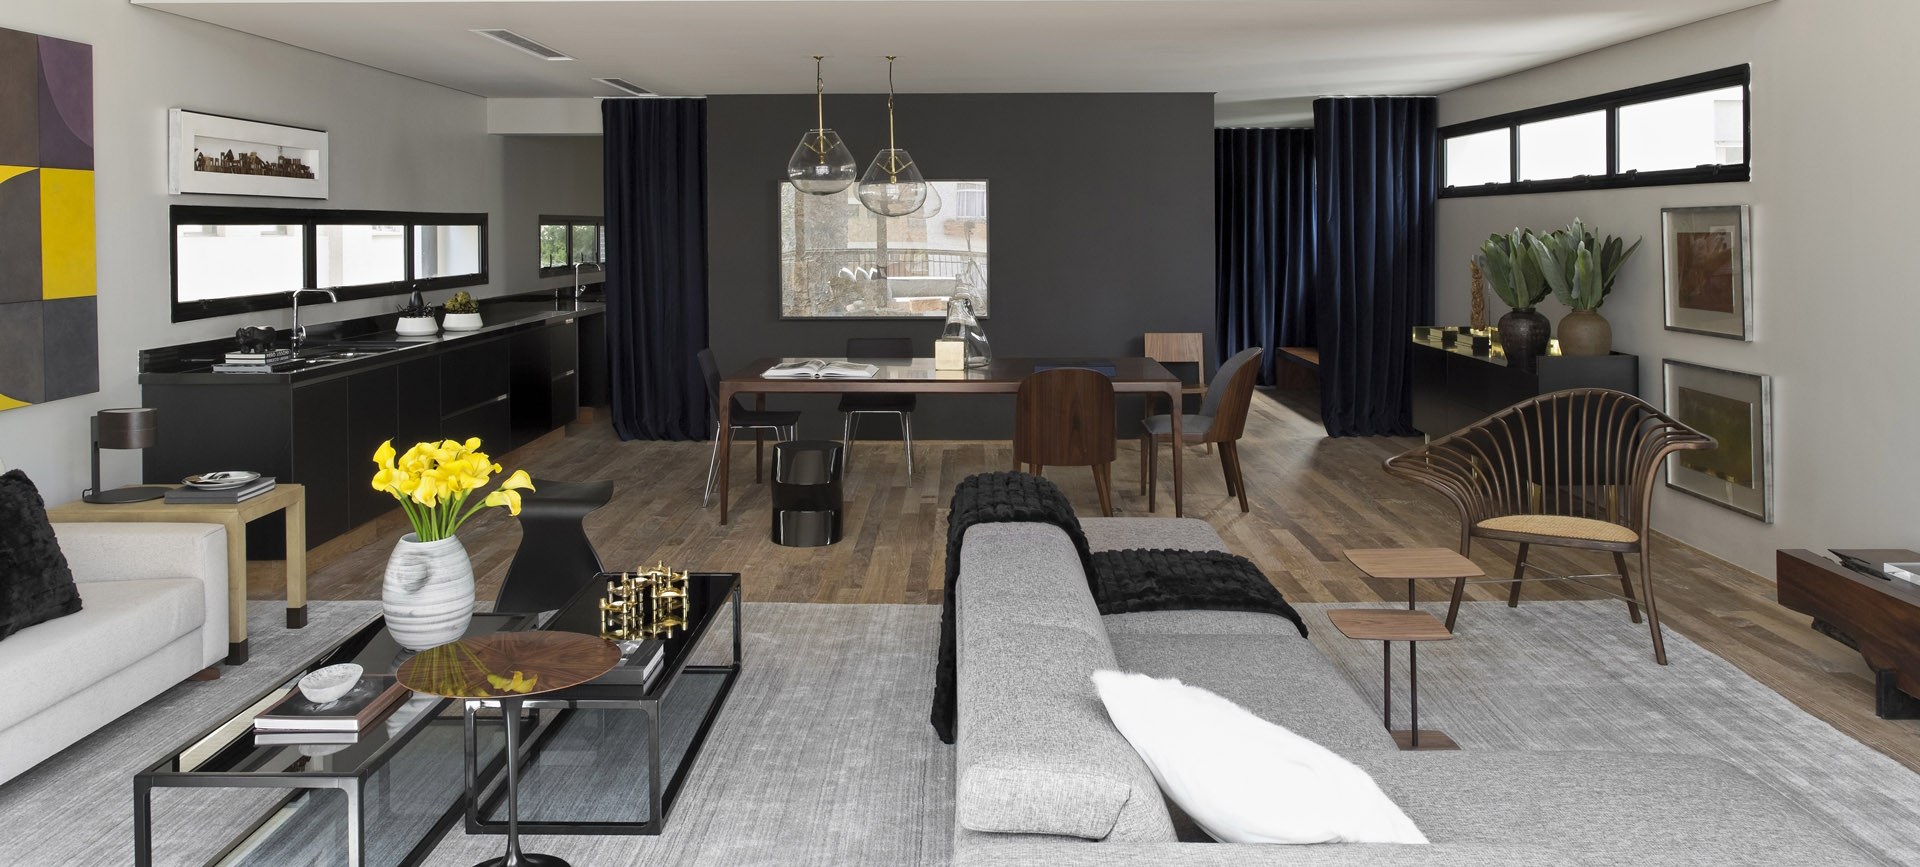 BUYING A CONDO: WHAT TO CONSIDER